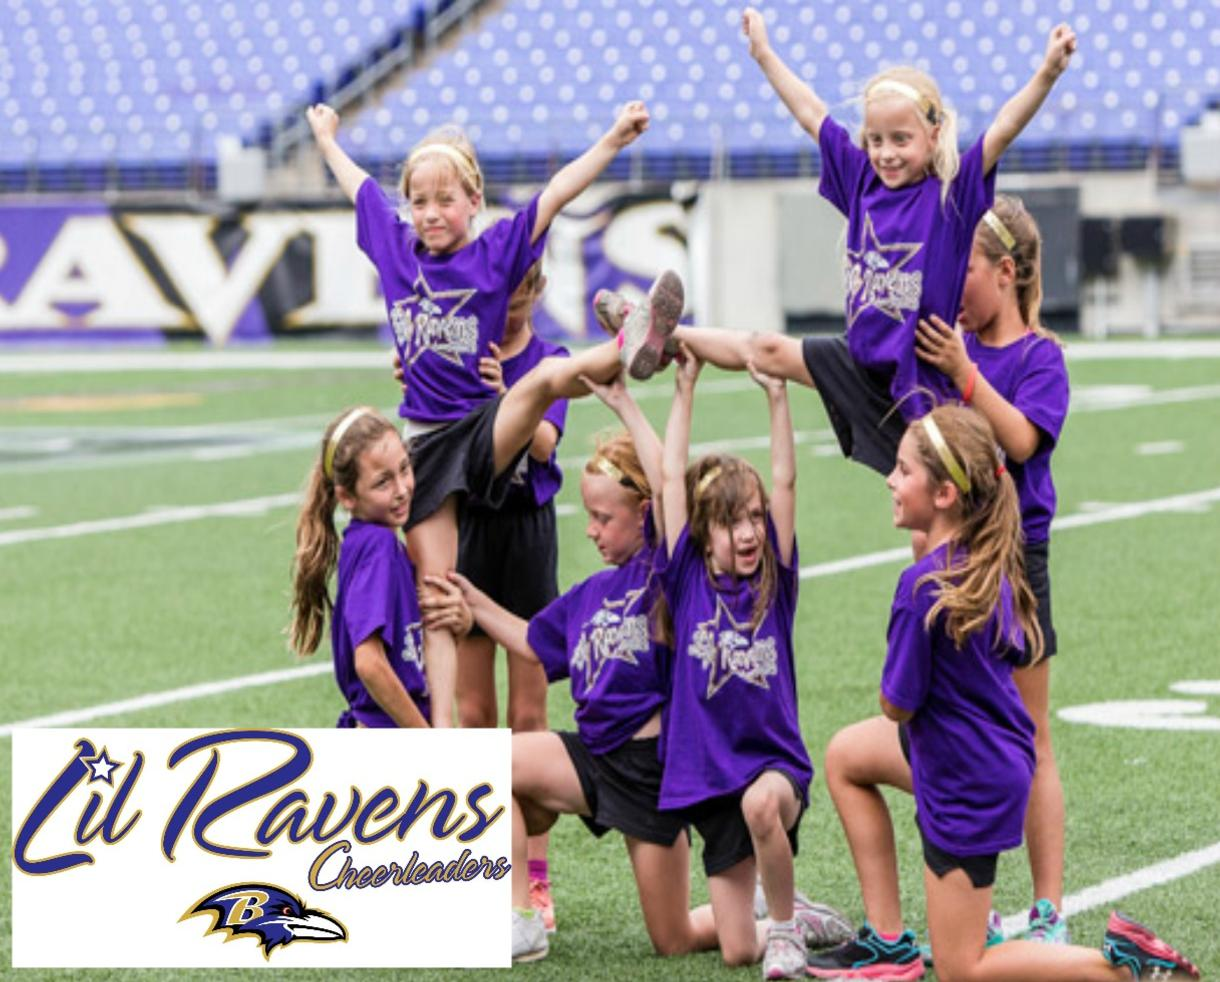 Deal 135 For Ravens Cheerleader Camp For Ages 6 17 At Mt Bank